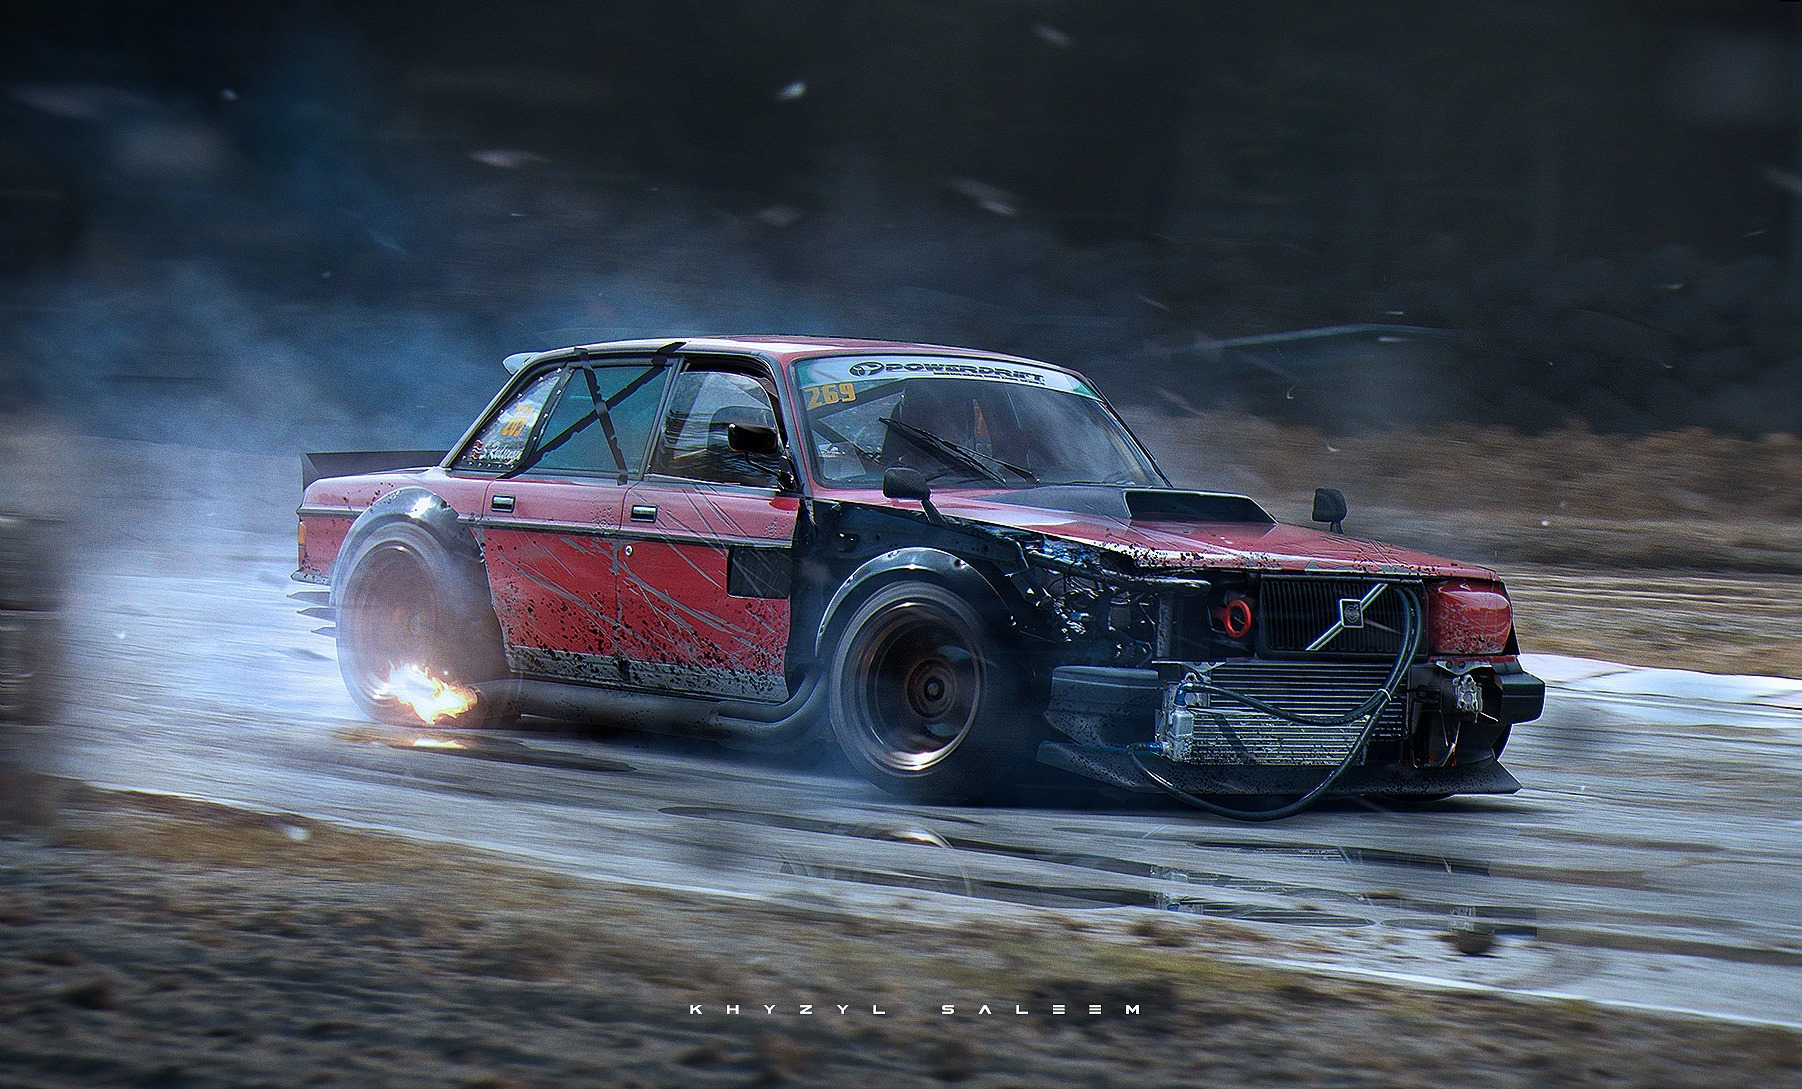 How About This Drift Missile